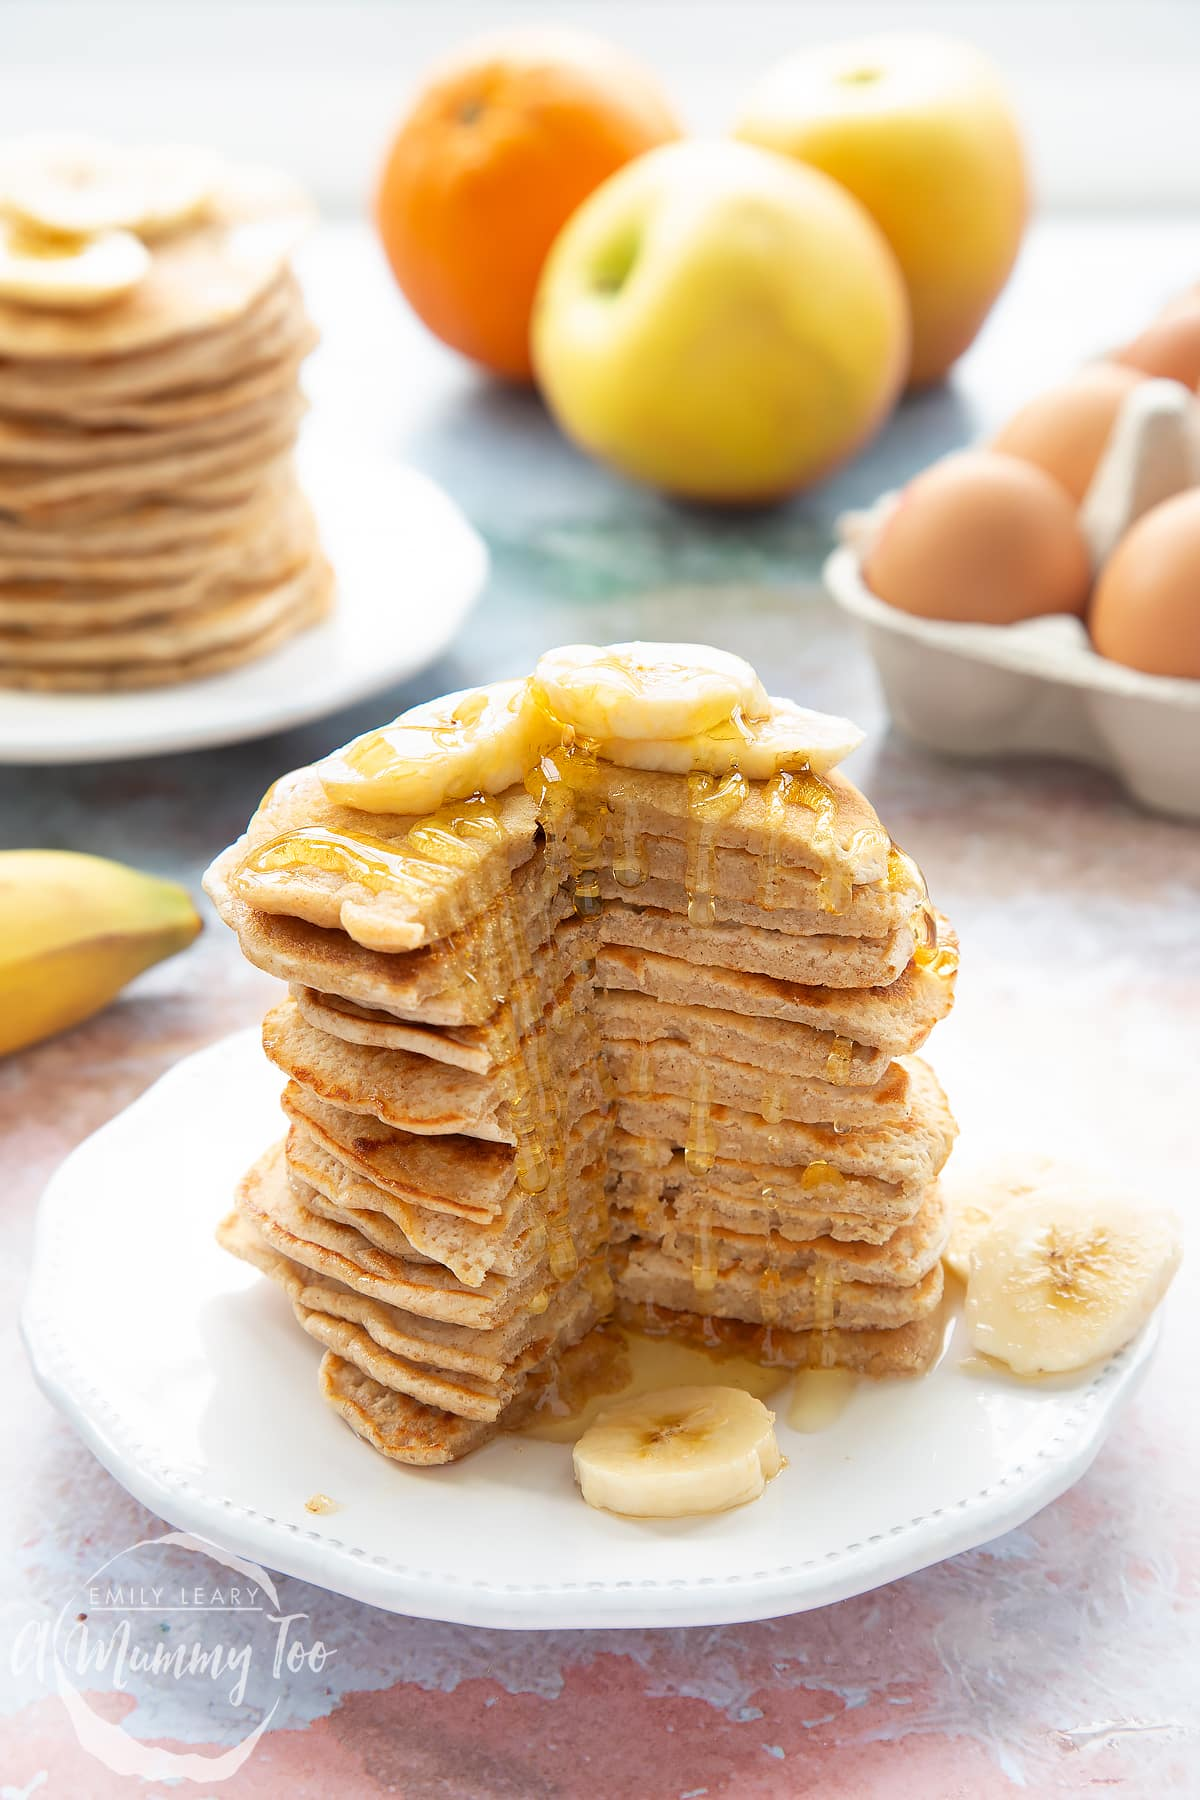 A stack of fluffy pancakes with a cut out of the front topped with syrup and banana on a white plate